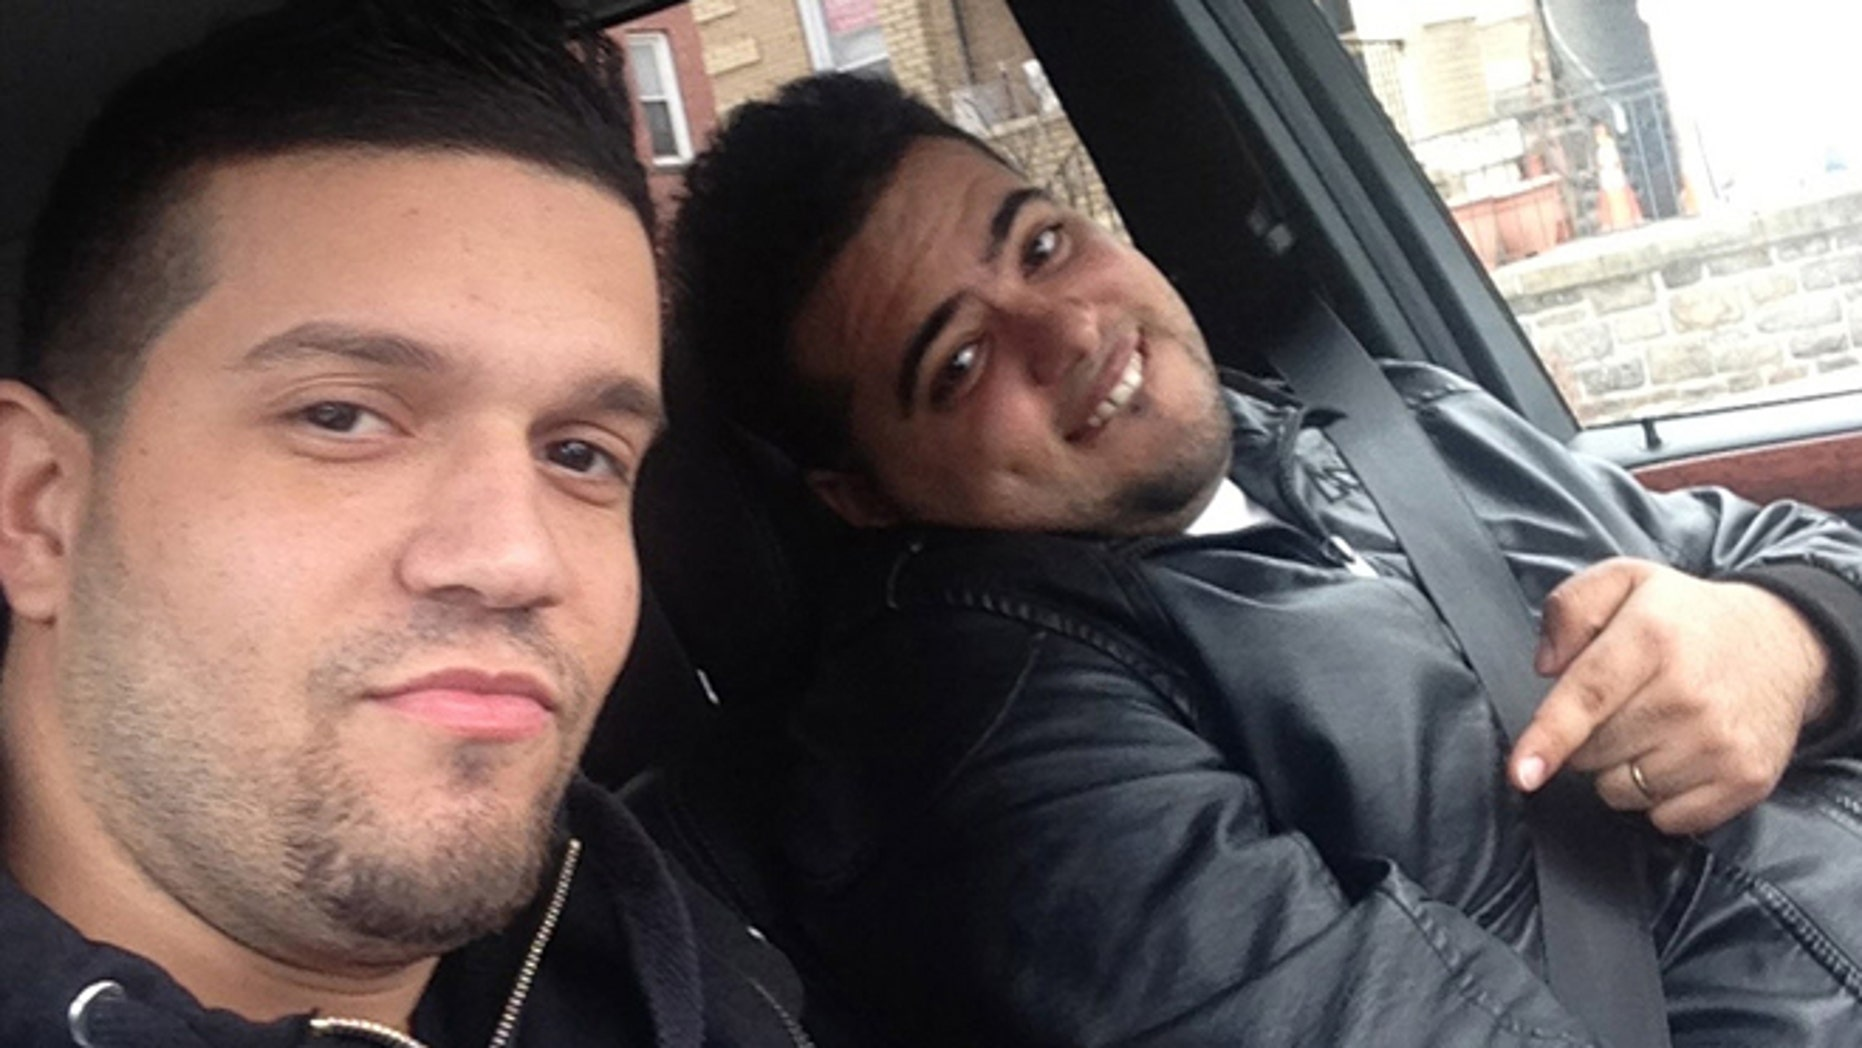 In this undated photo provided by the United States Attorneyâs Office for the Southern District of New York, Elvis Rafael Rodriguez, left, and Emir Yasser Yeje, pose with bundles of cash allegedly stolen using bogus magnetic swipe cards at cash machines throughout New York. (AP Photos/U.S. Attorneyâs Office for the Southern District of New York)